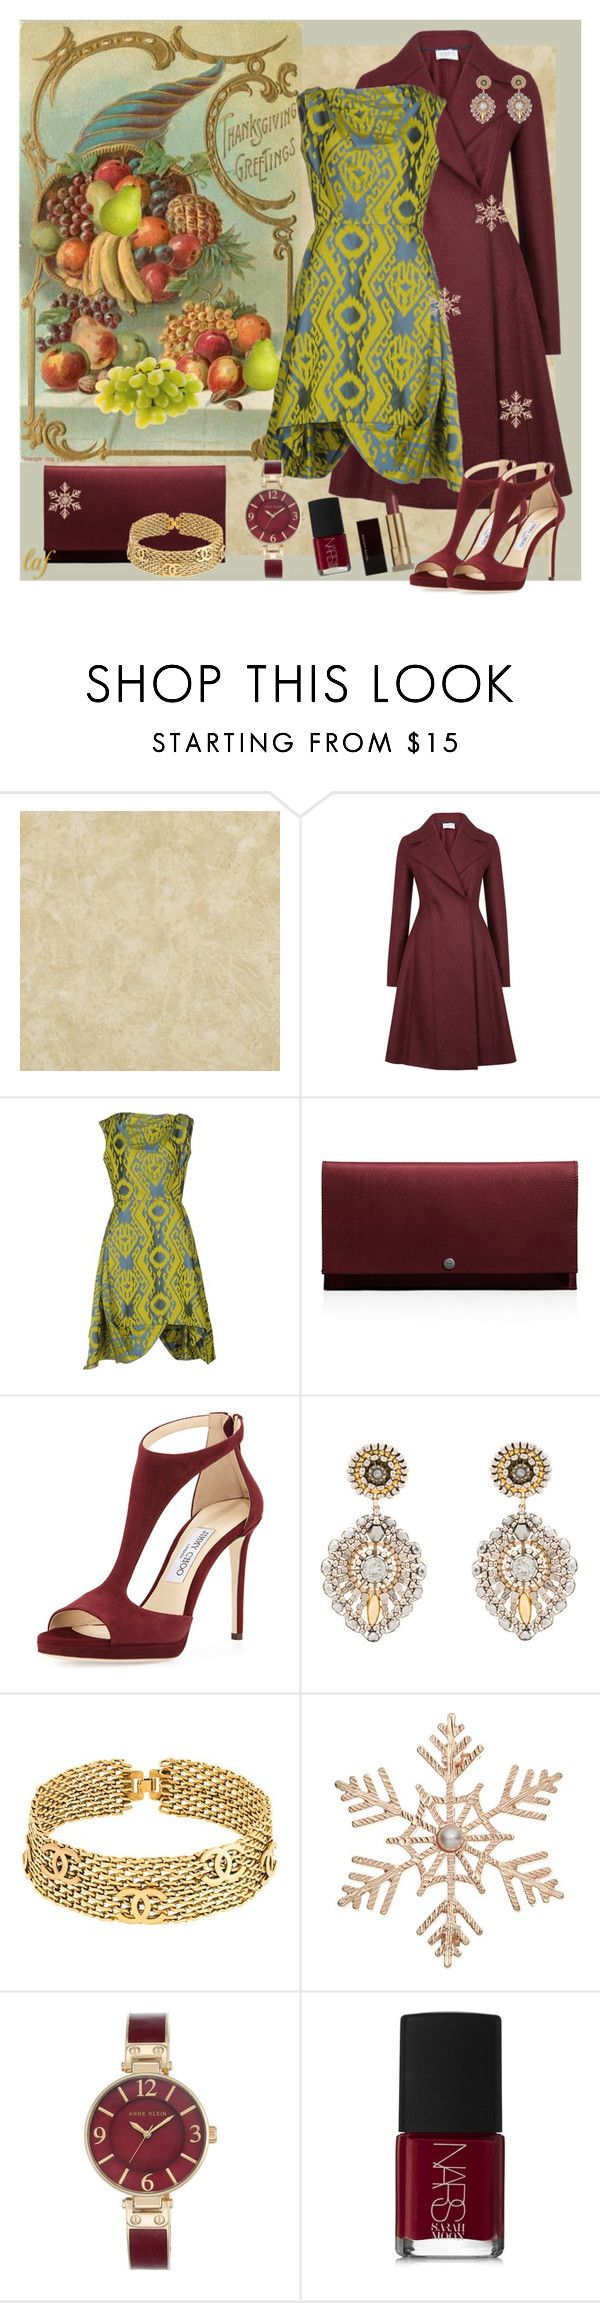 """""""Thanksgiving Fashions II"""" by lois-boyce-flack ❤ liked on Polyvore featuring Harris Wharf London, Vivienne Westwood Anglomania, Shinola, Jimmy Choo, Miguel Ases, Chanel, John Lewis, Anne Klein, NARS Cosmetics and Kevyn Aucoin"""